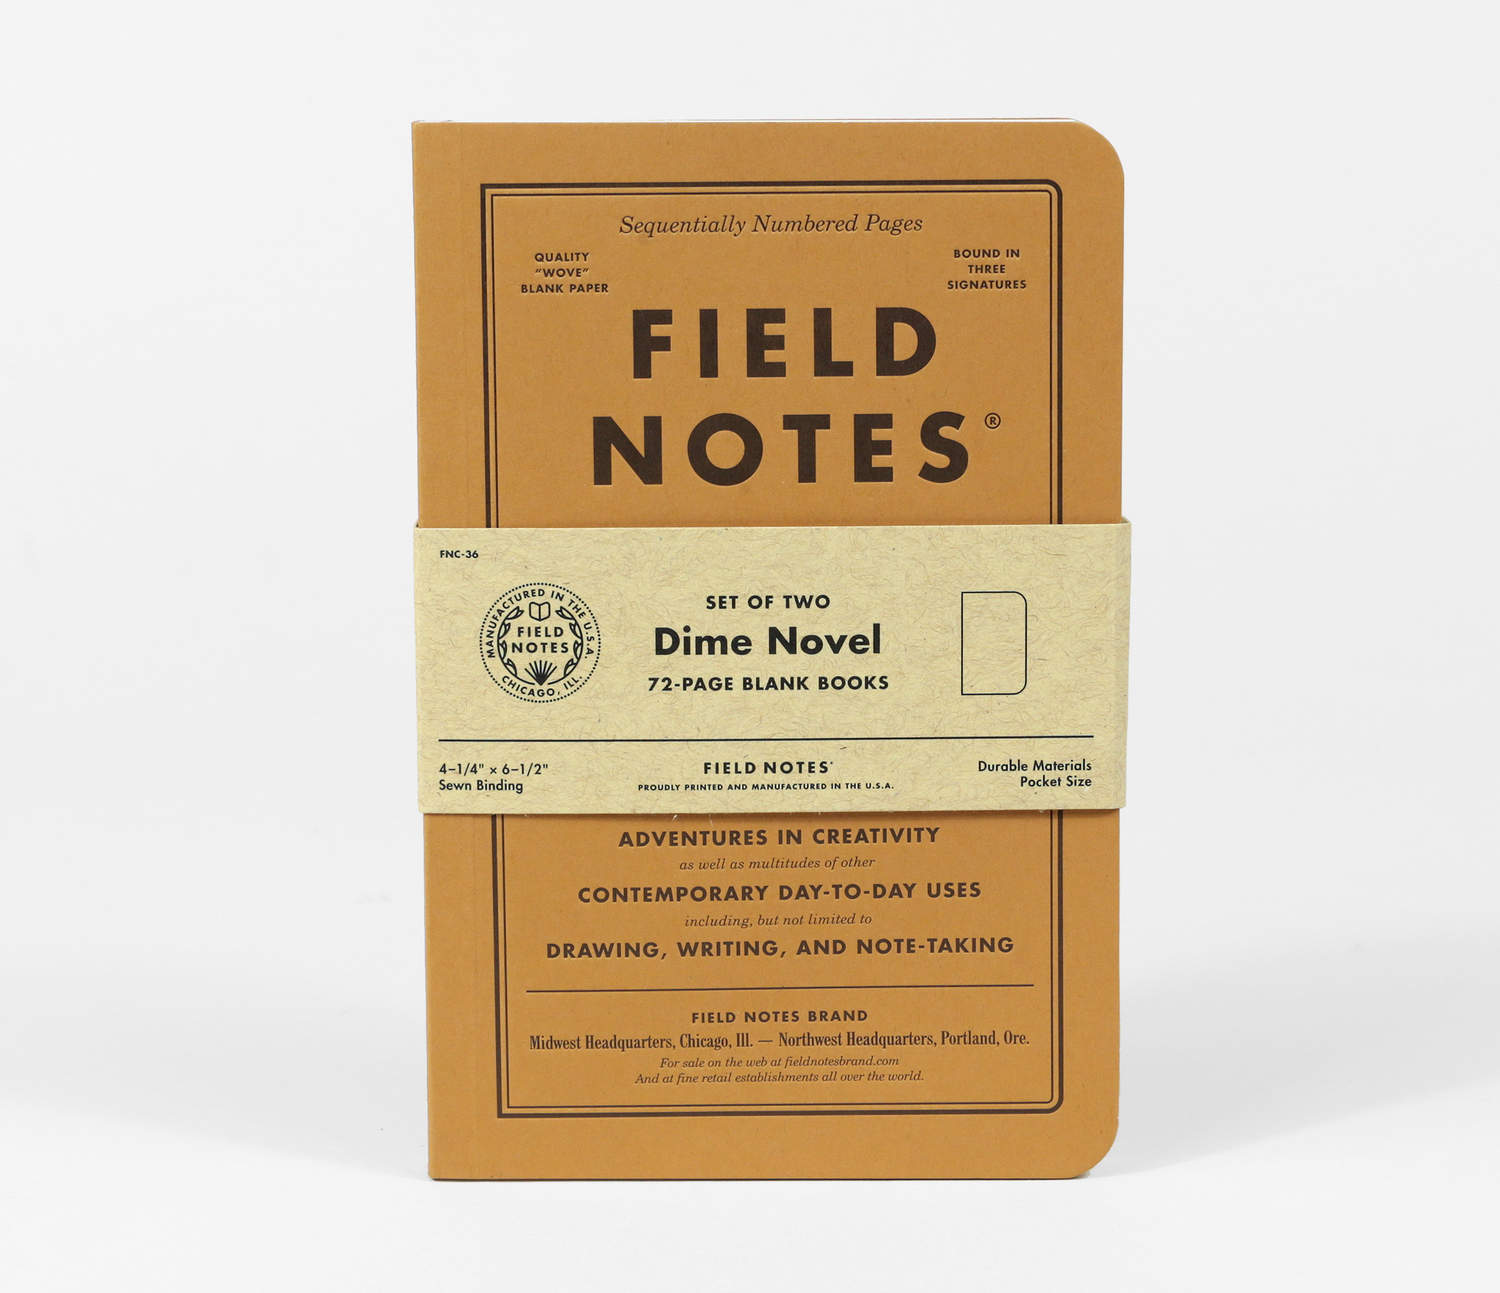 Field Notes Brand Dime Novel at buyolympia – Field Note